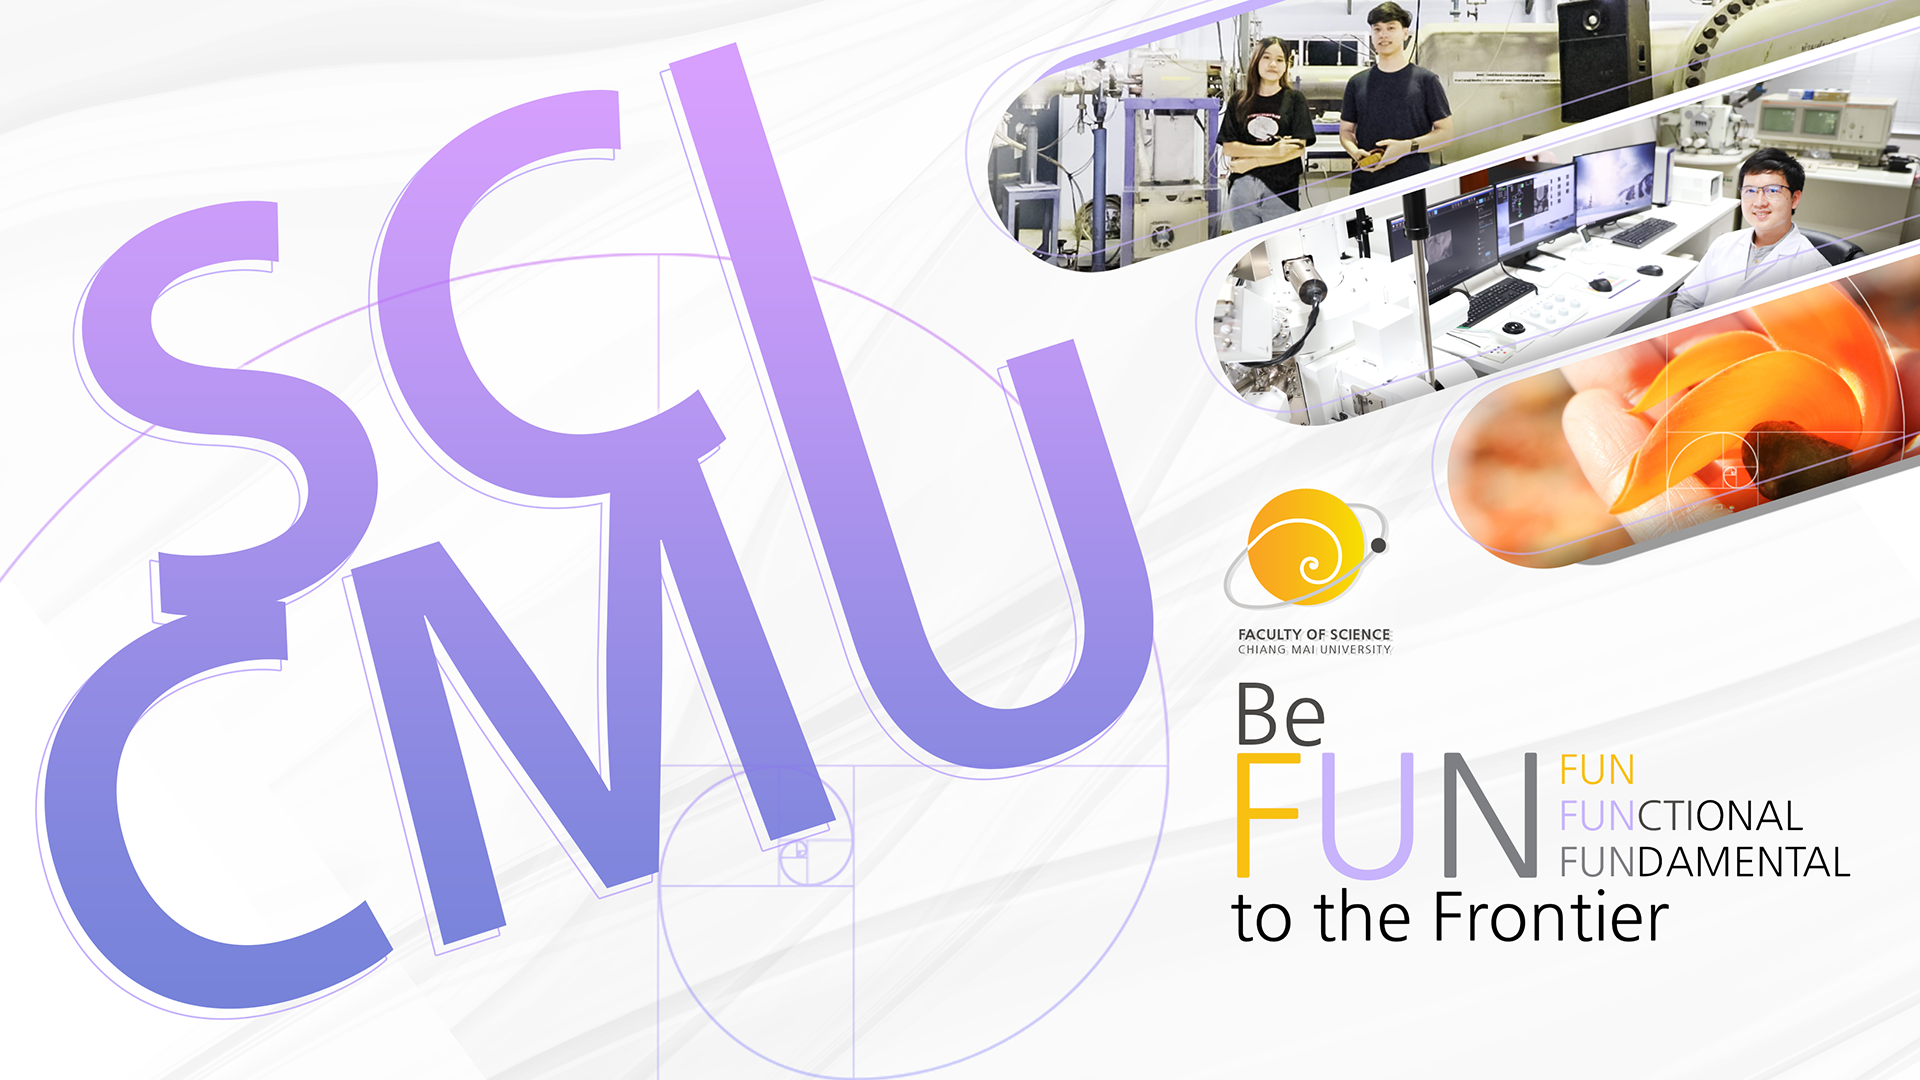 Science CMU : Be FUN to the Frontier